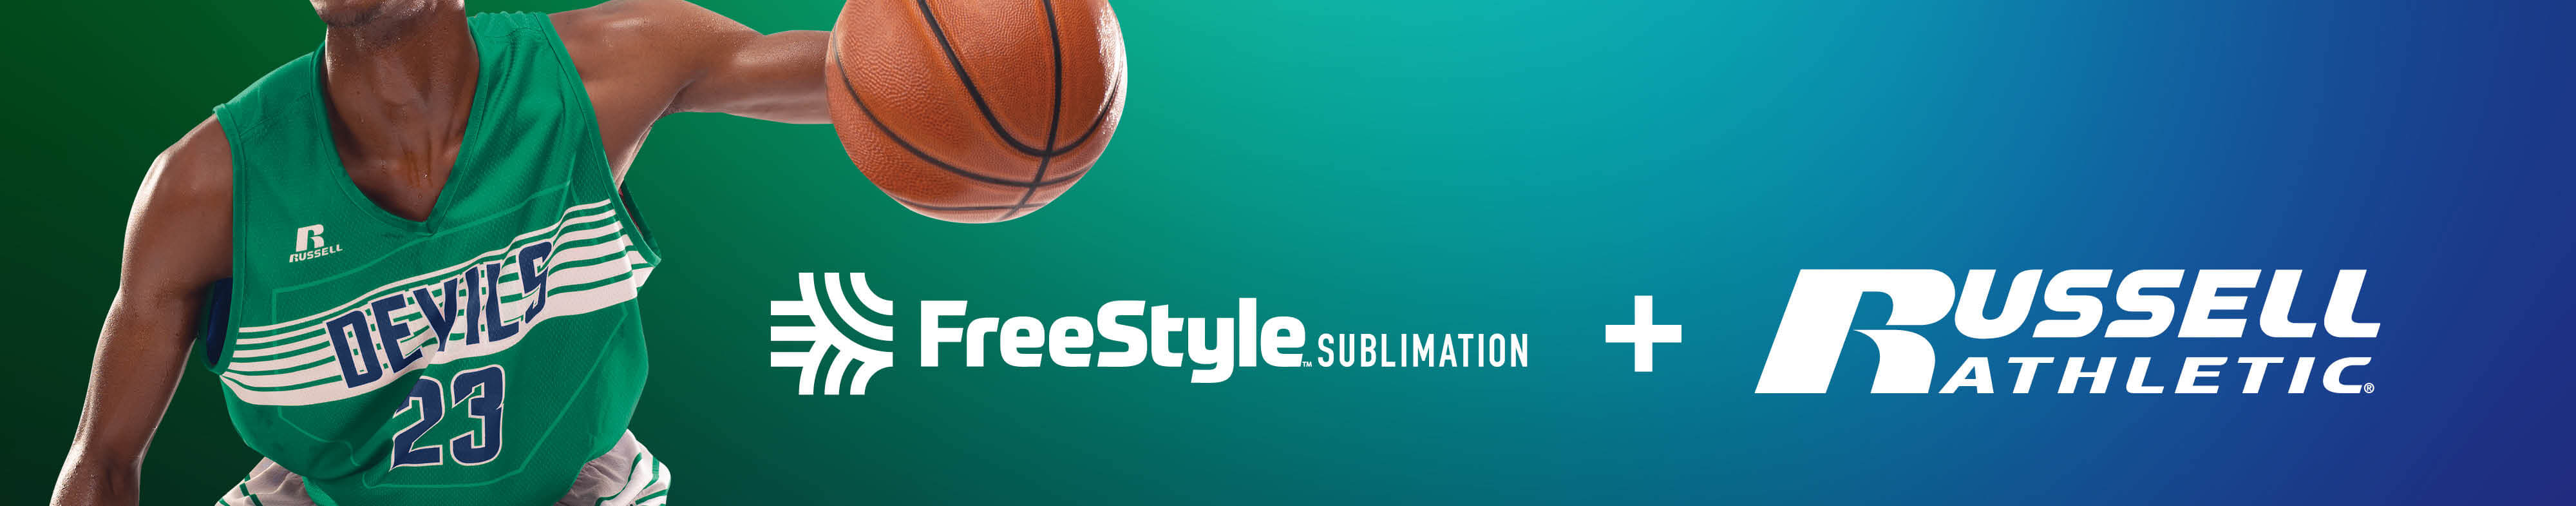 Russell Athletic Sublimation now on FreeStyle builder.